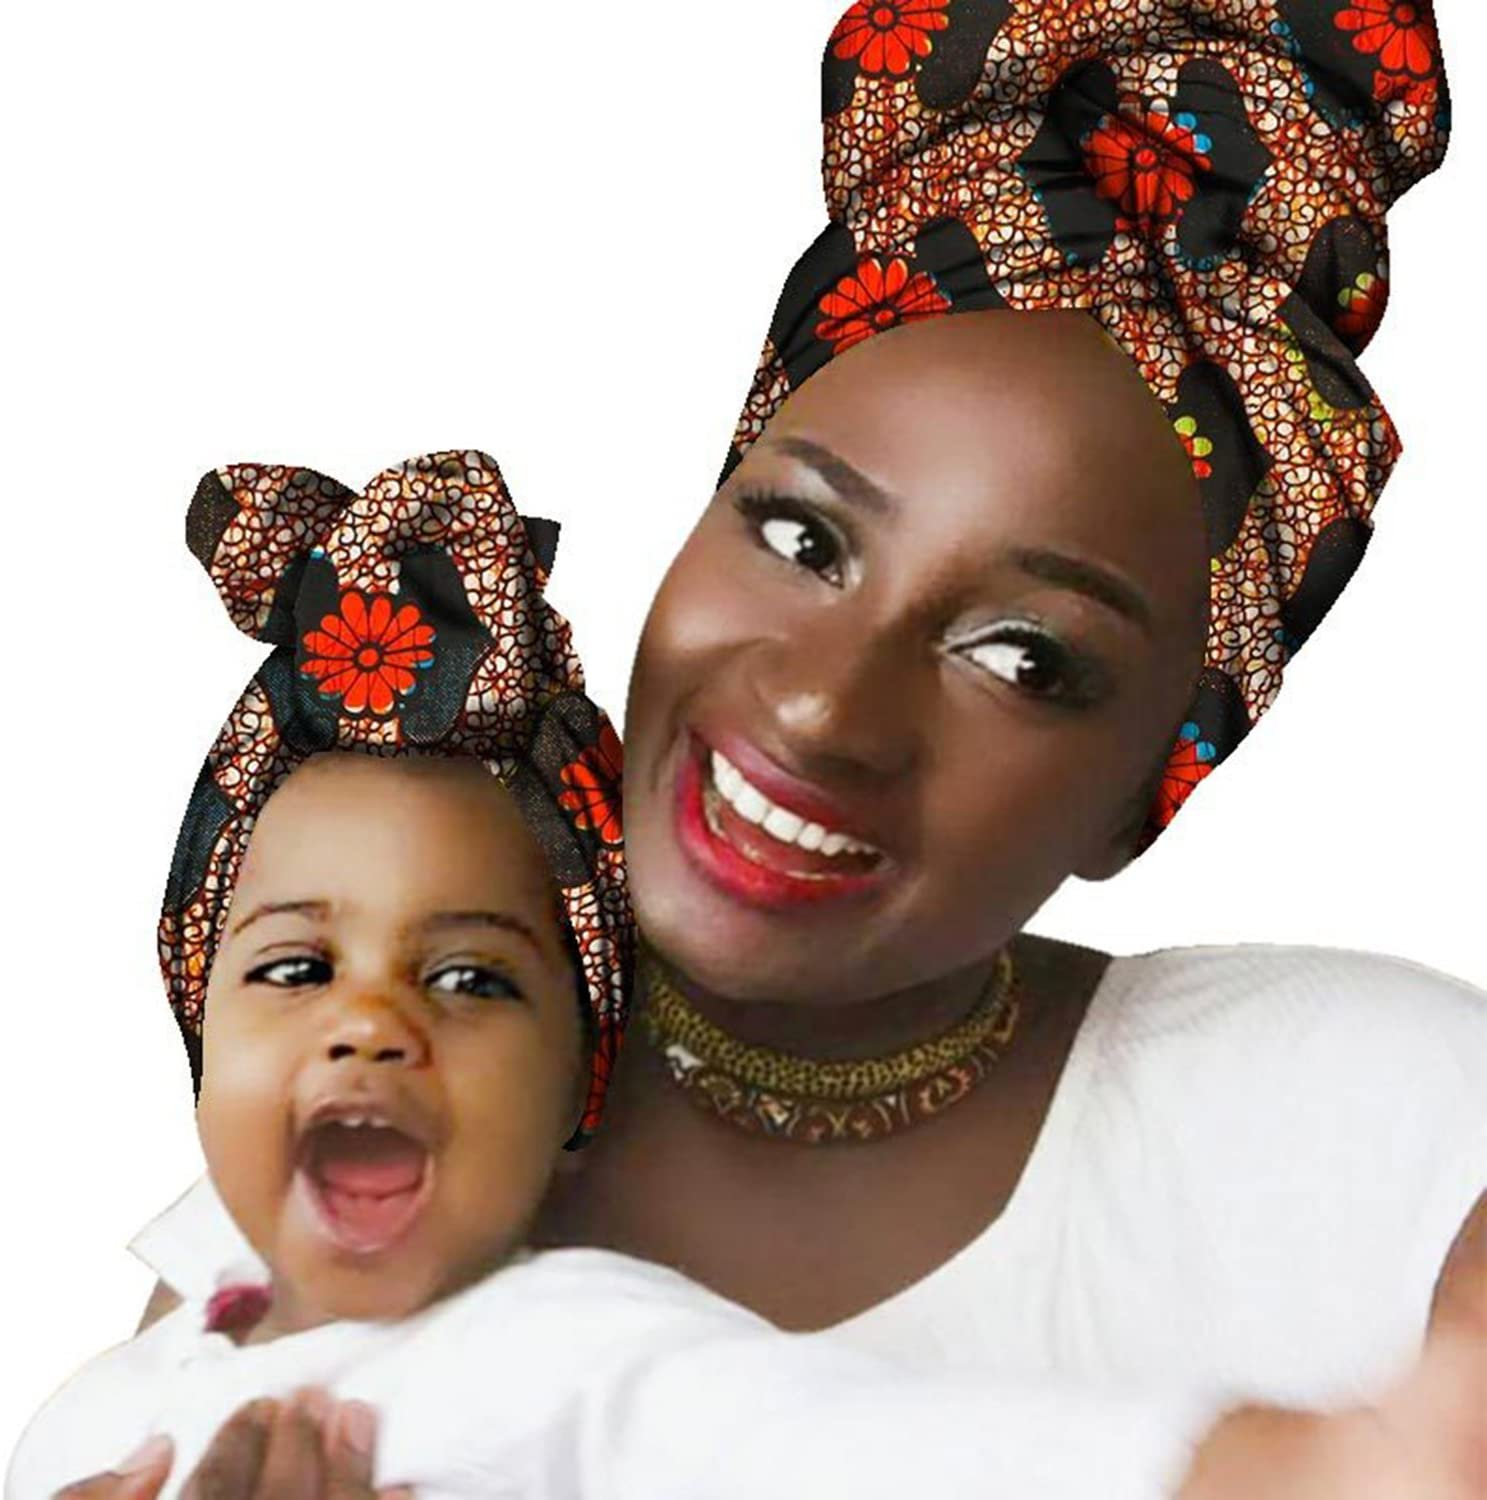 Baby /& Mom Dress Up African Head Scarf Gele Ipele 100/% Cotton Bazin Wax Print Wrap Tie Scarf 2 Pk Chien Mother Daughter Hair Accessory Headband